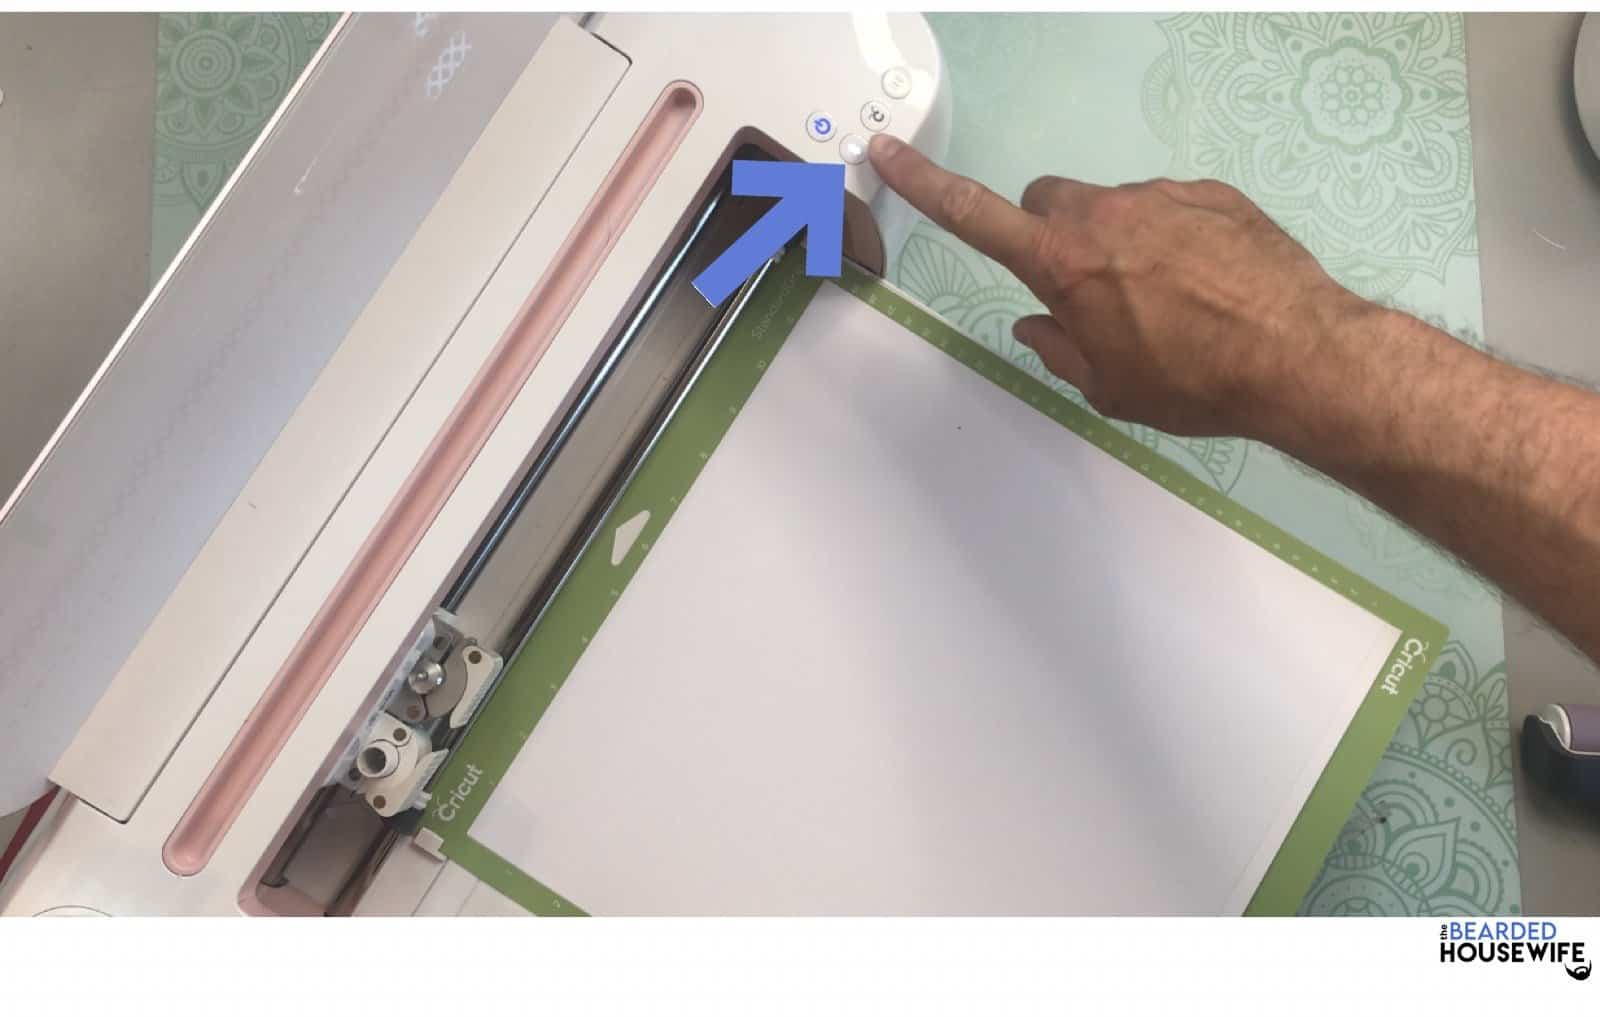 press the flashing arrows to load your mat